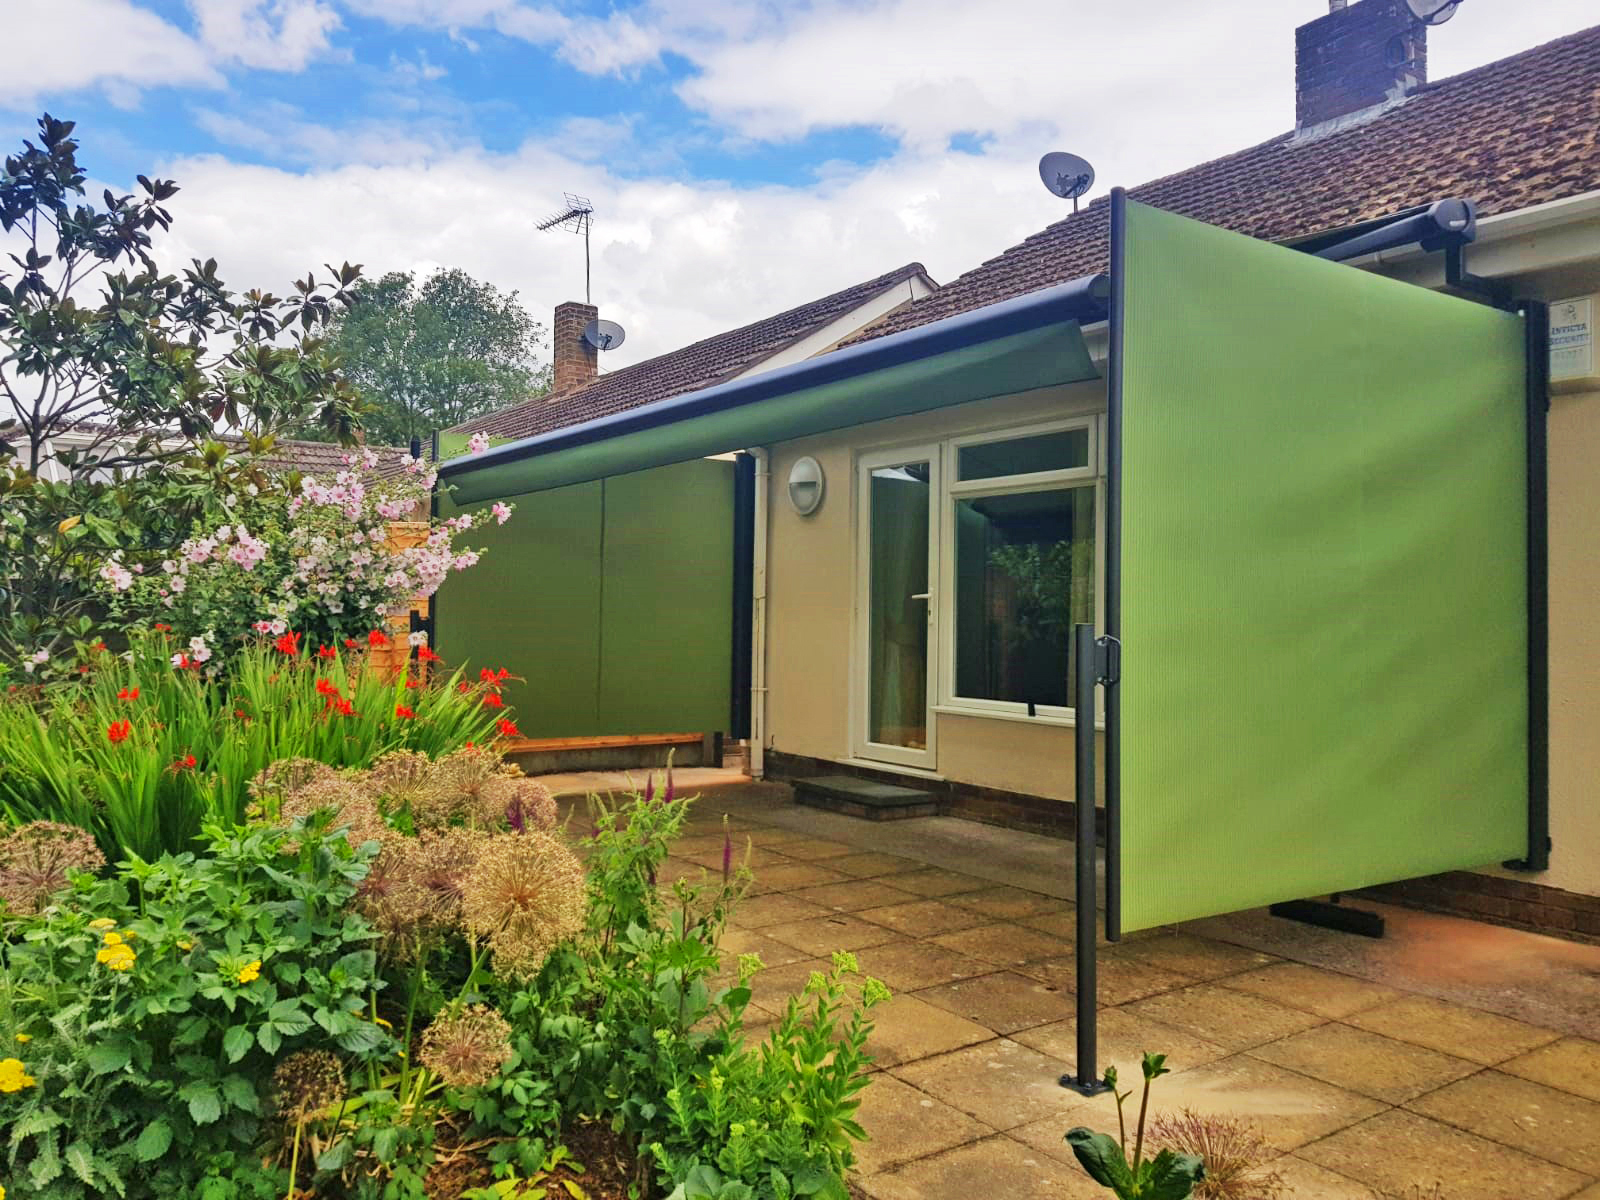 Green Markilux Pergola with Side Screens